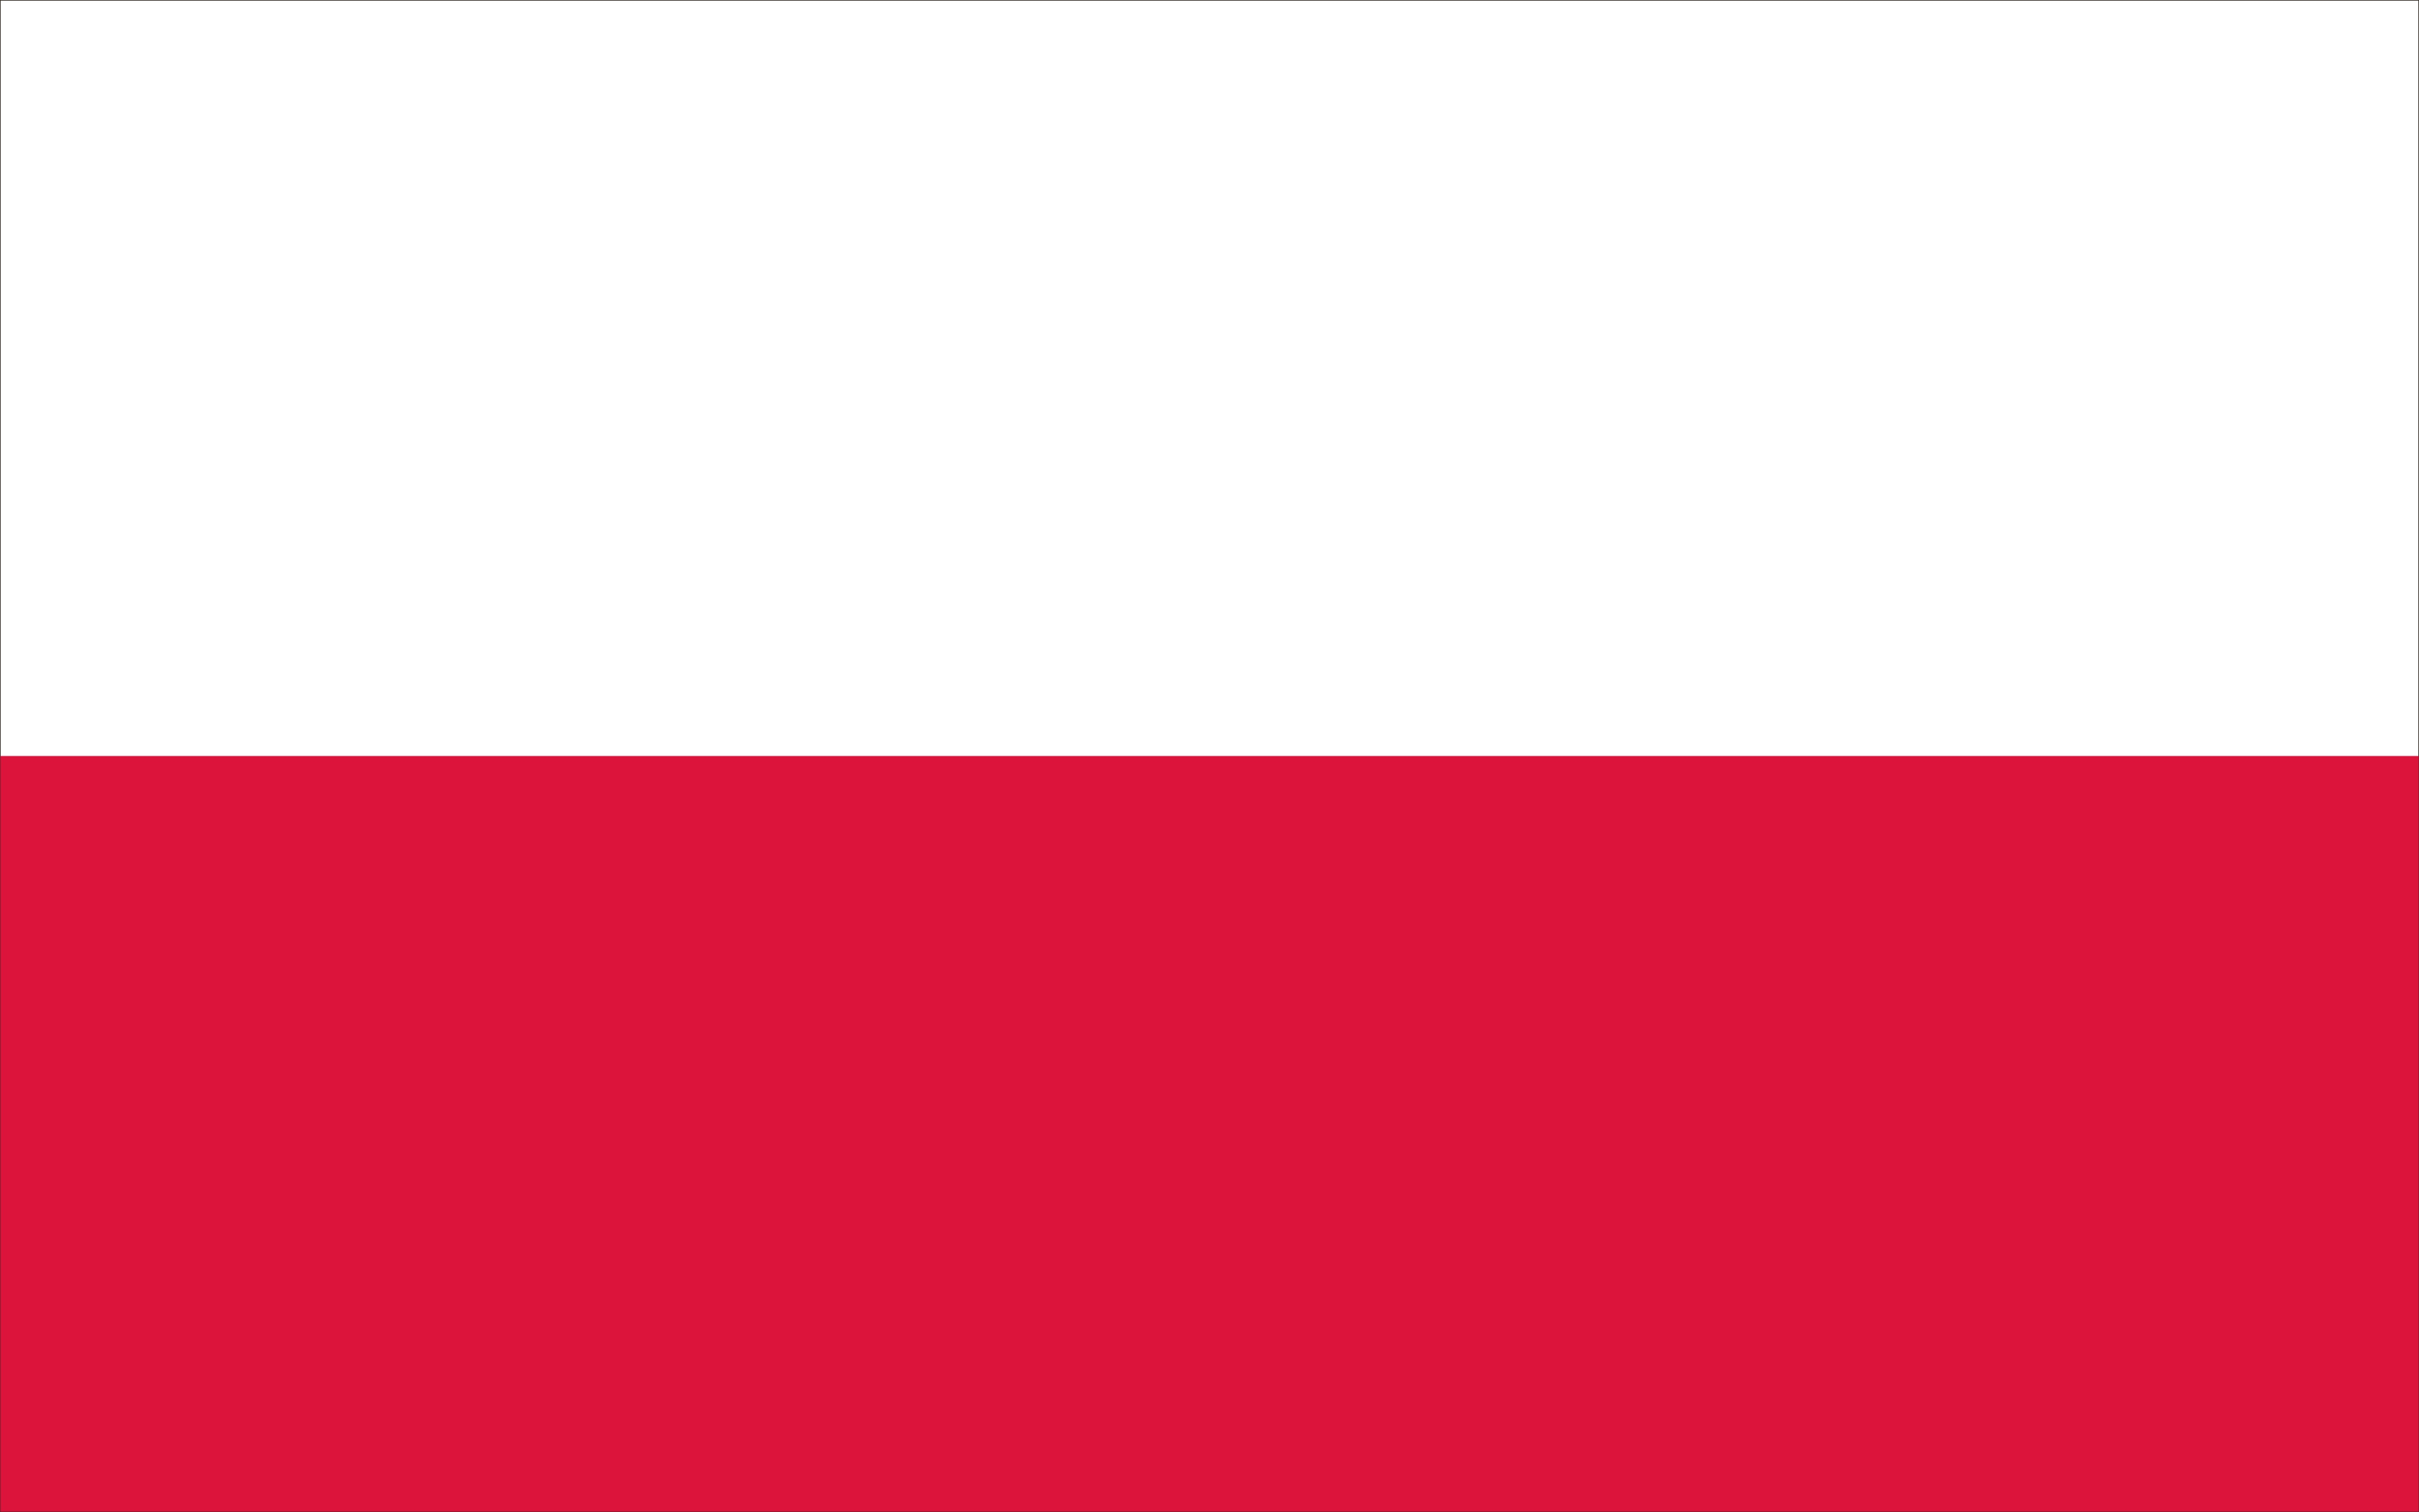 NATIONAL FLAG OF POLAND | The Flagman